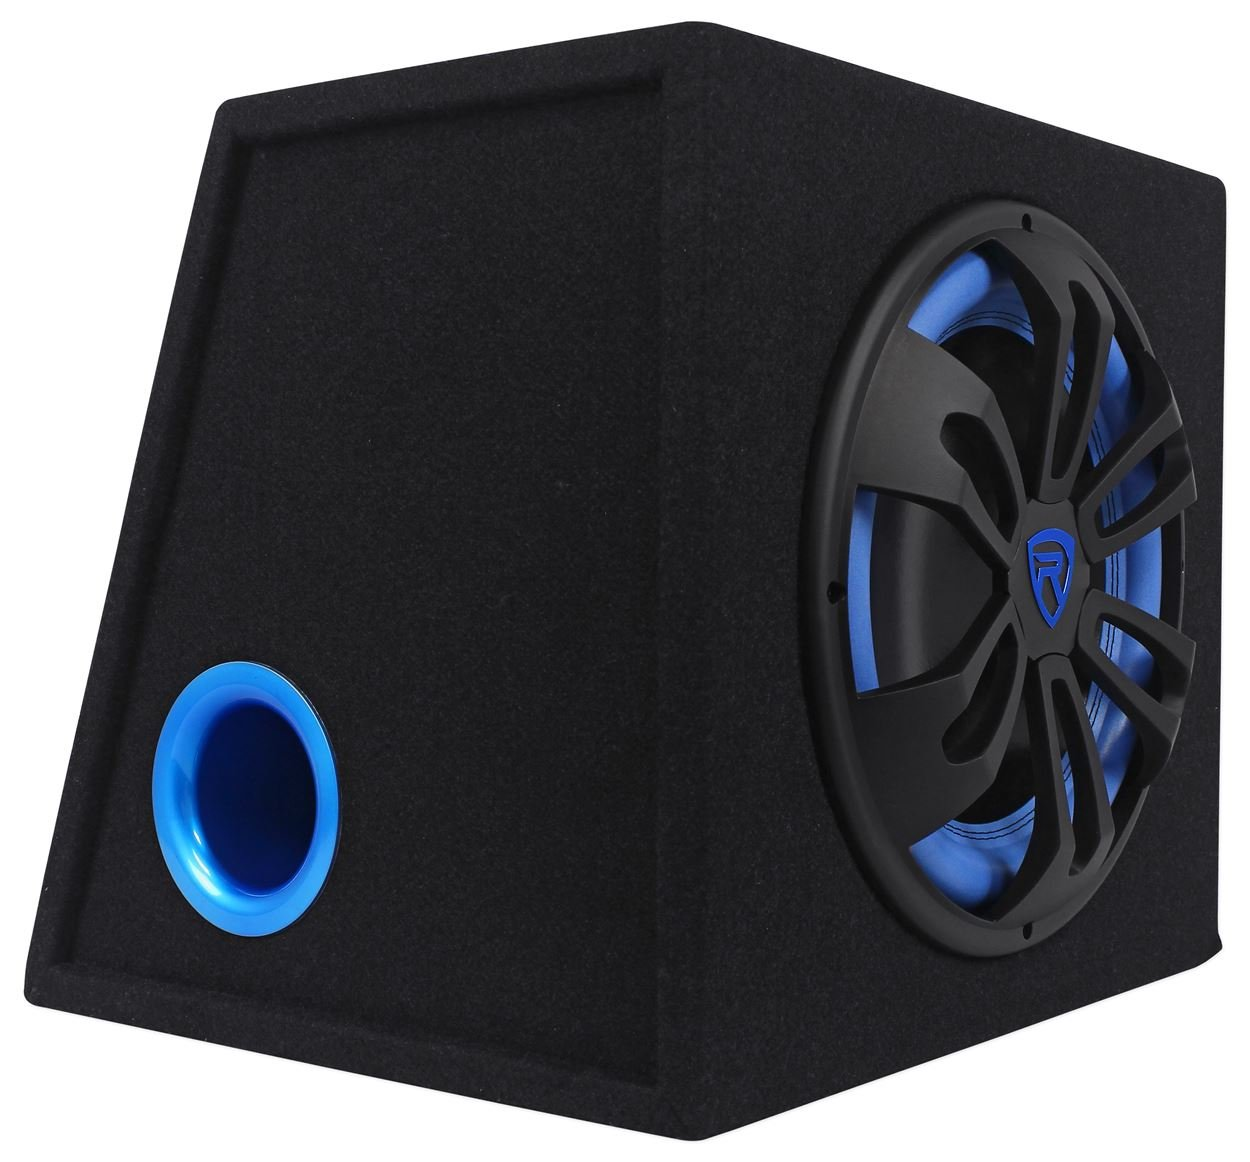 Rockville RVB12.1A 12 Inch 500W Active Powered Car Subwoofer+Sub Enclosure Box by Rockville